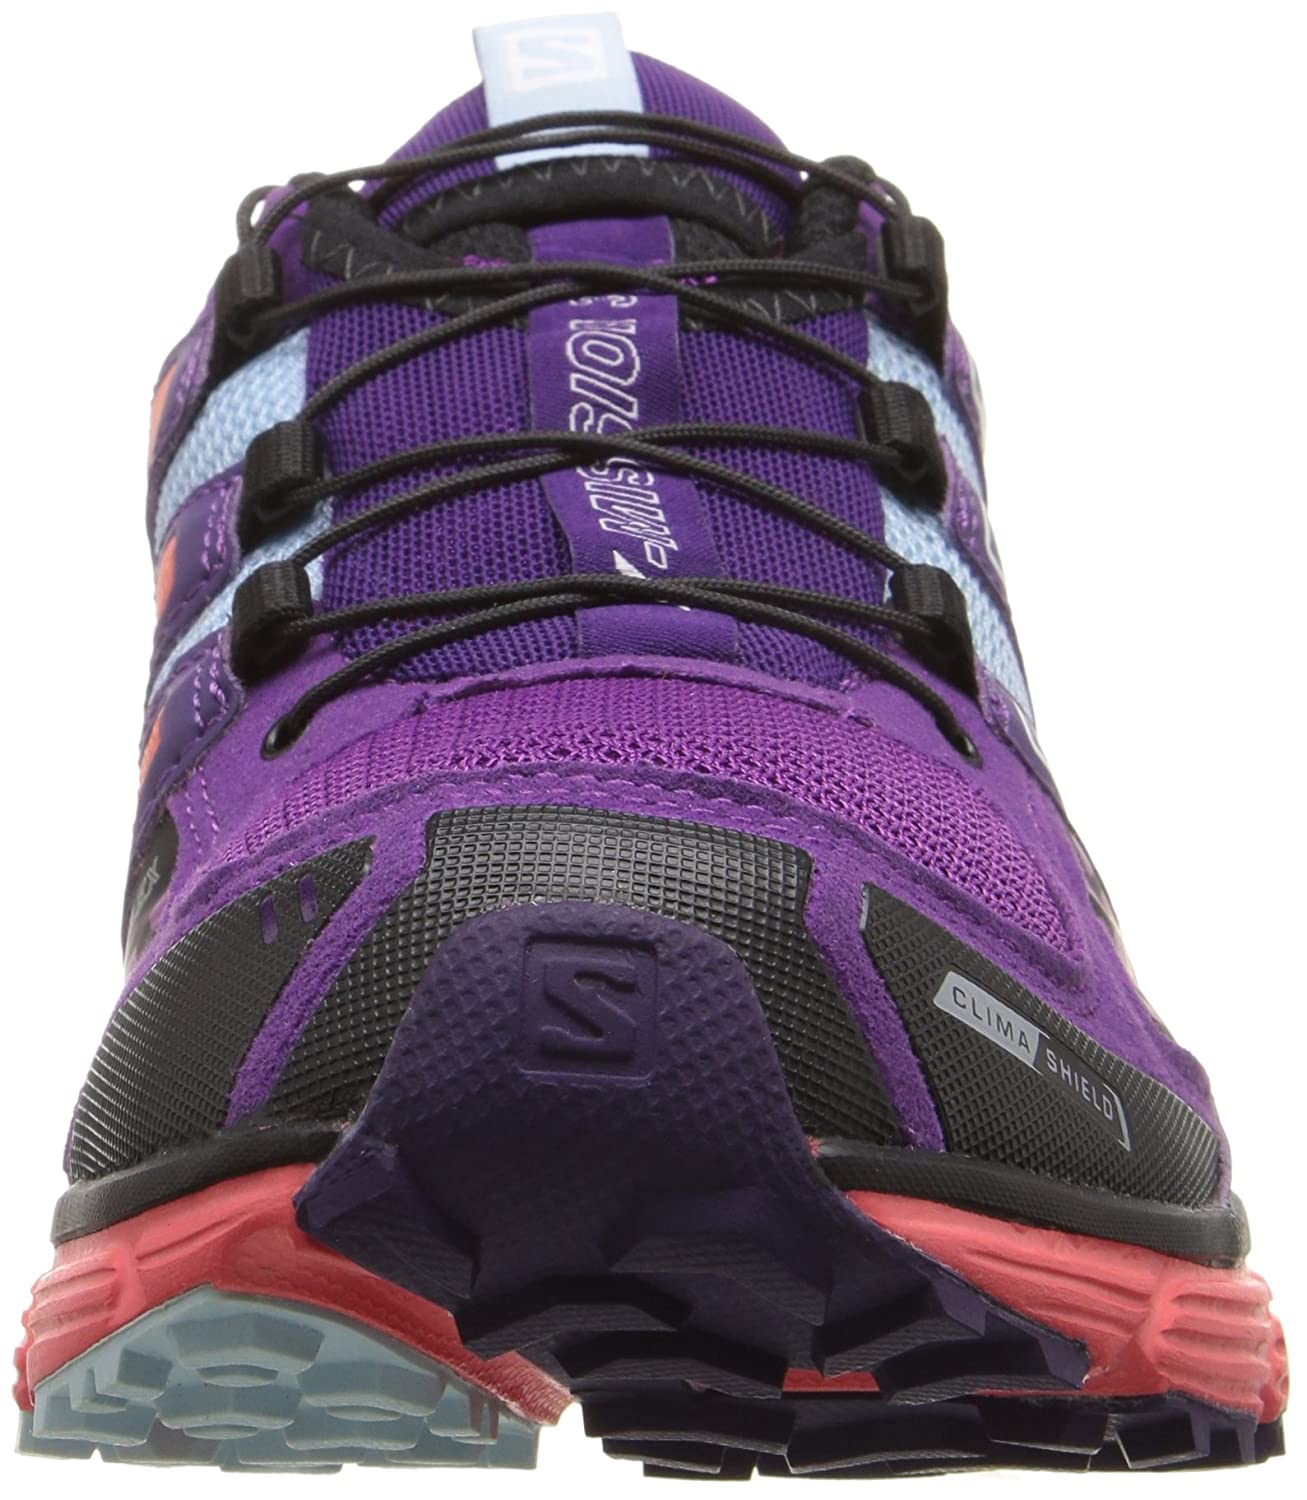 c7e46f008c5a ... Salomon Women s X-Mission 3 CS W Trail Running Shoe Purple Coral  B017SRY4HM 5 ...